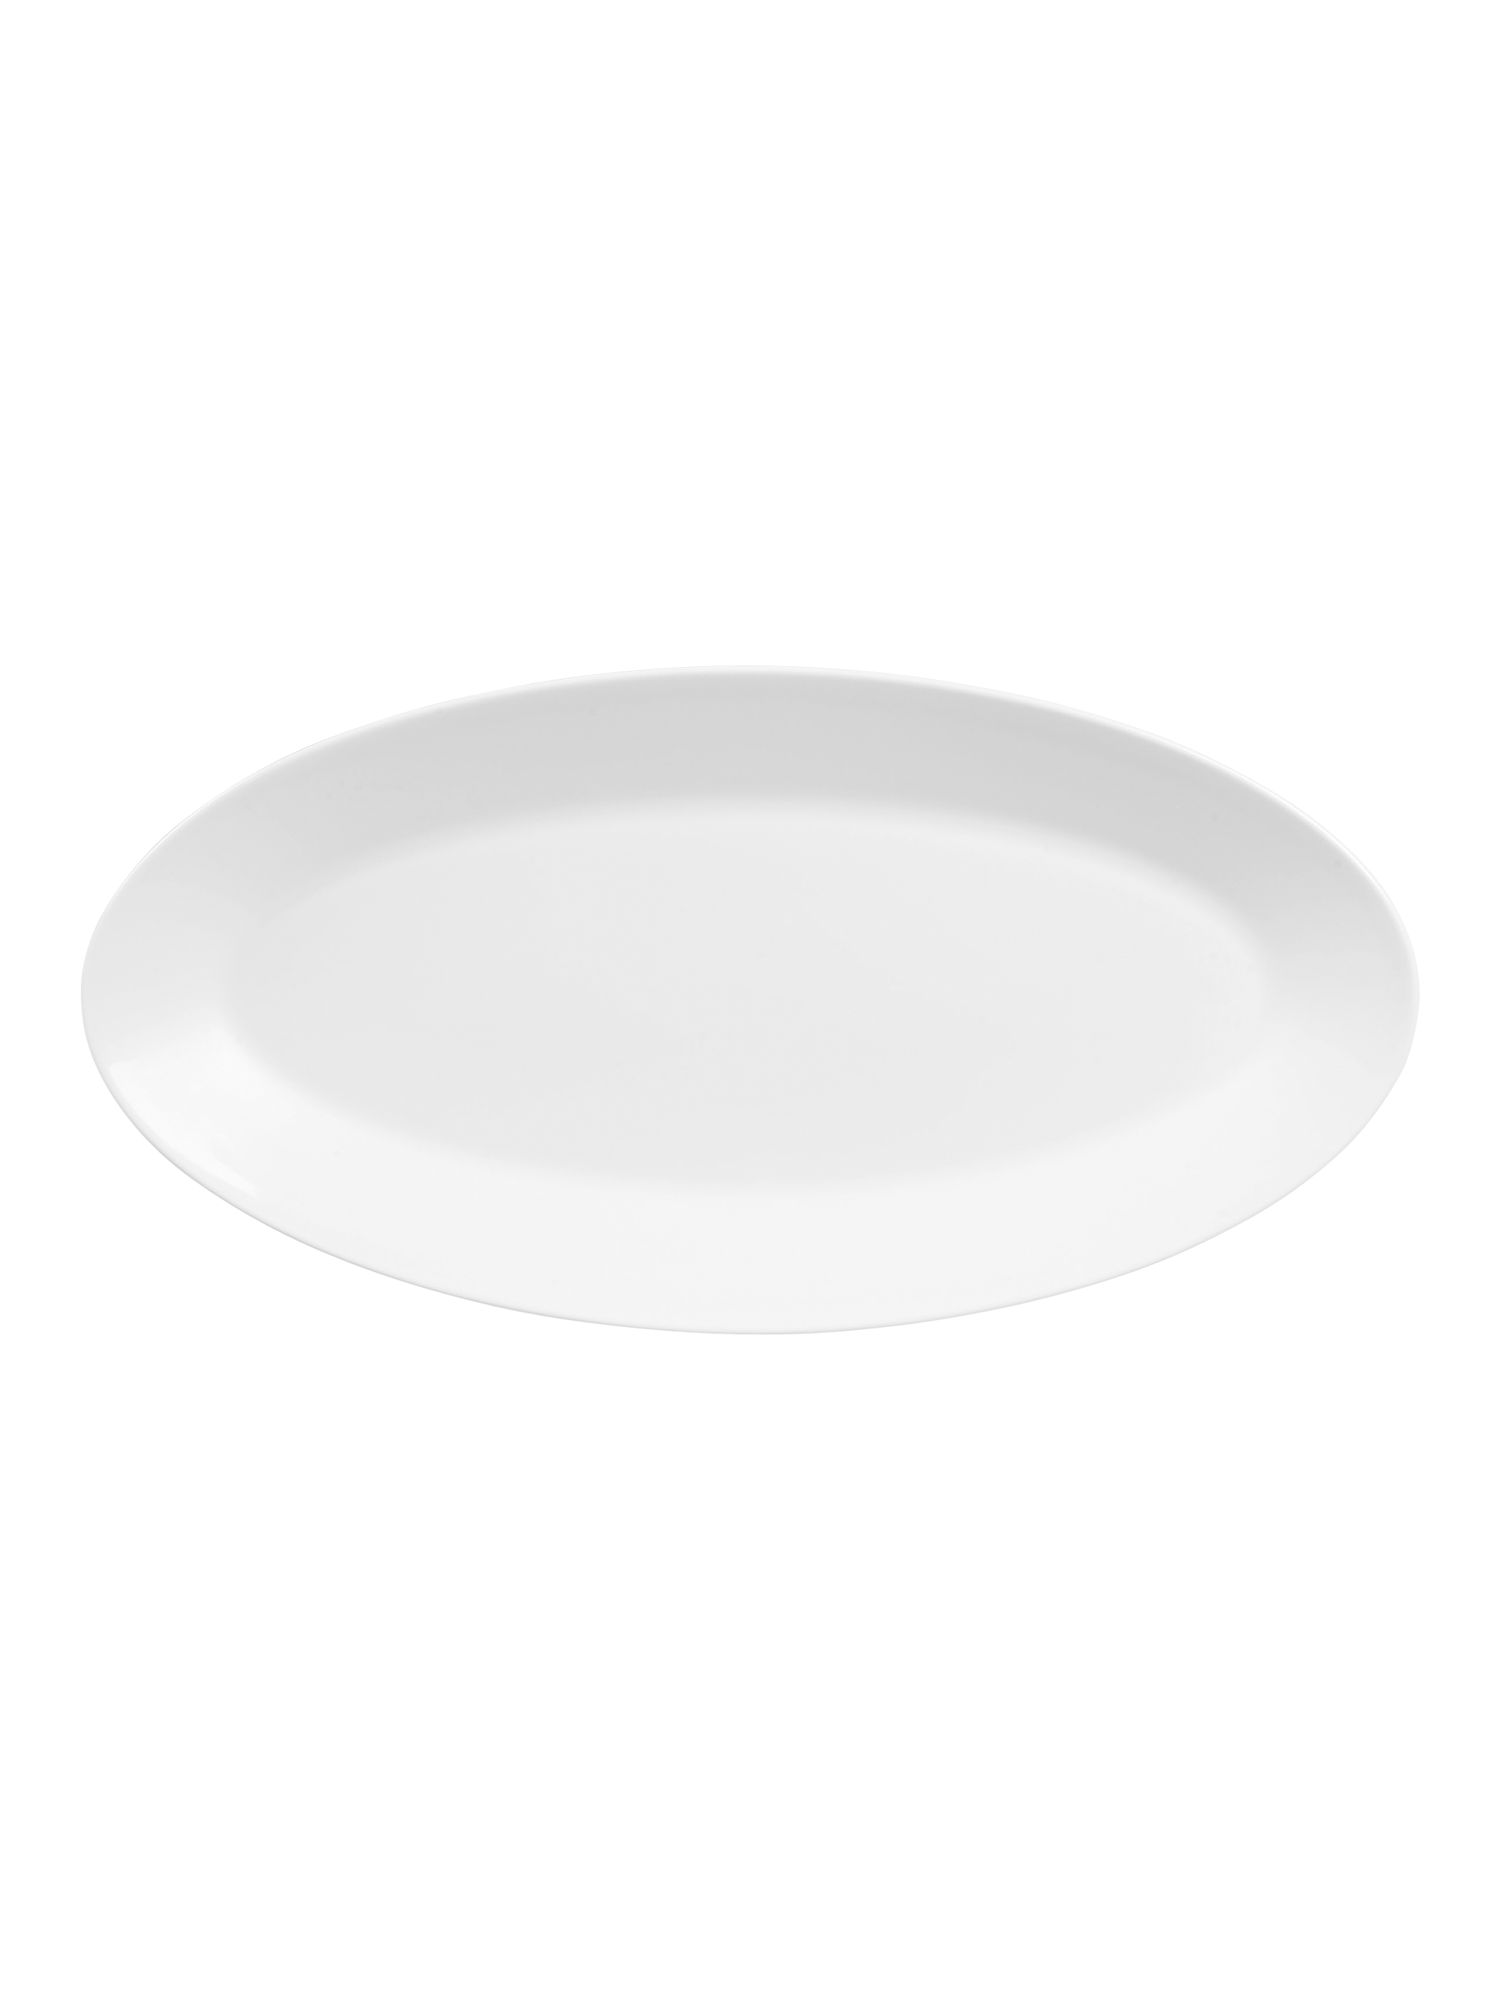 White large oval platter